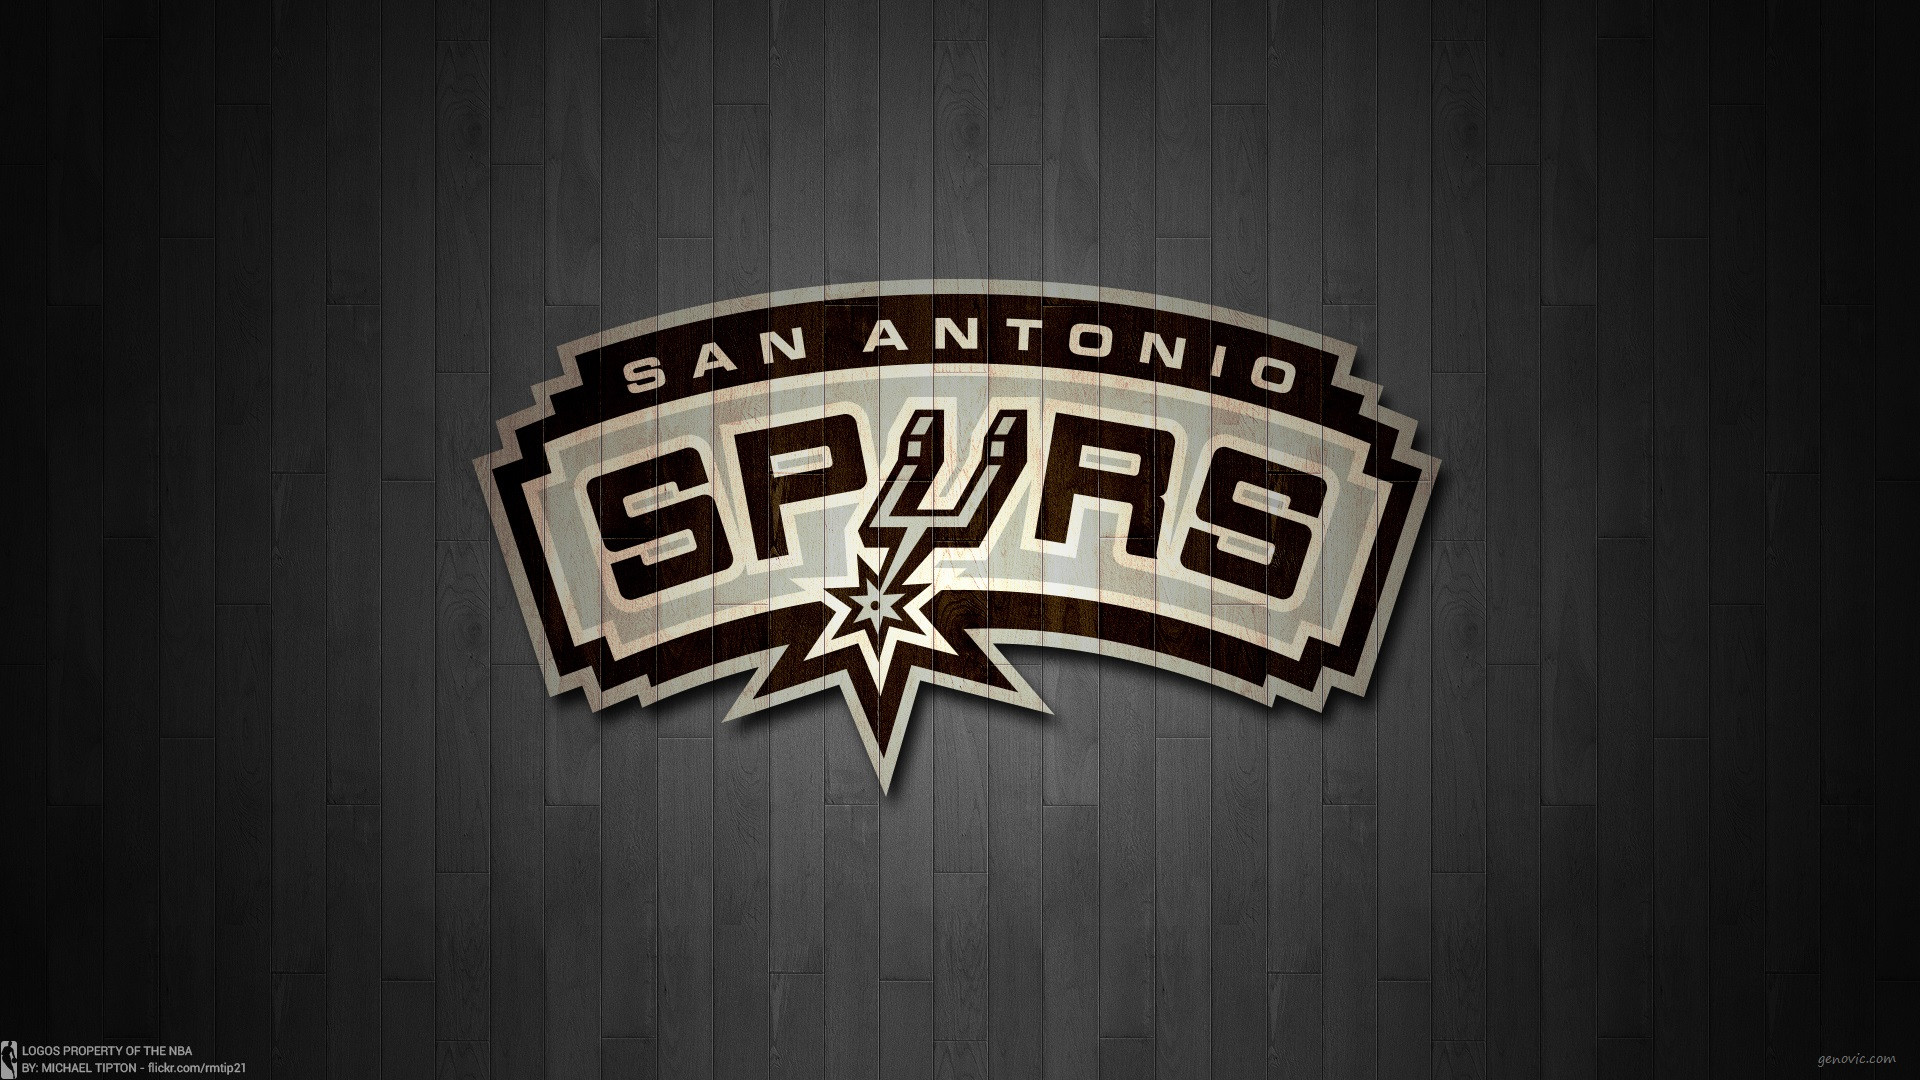 Cached Pictures of san antonio spurs logo